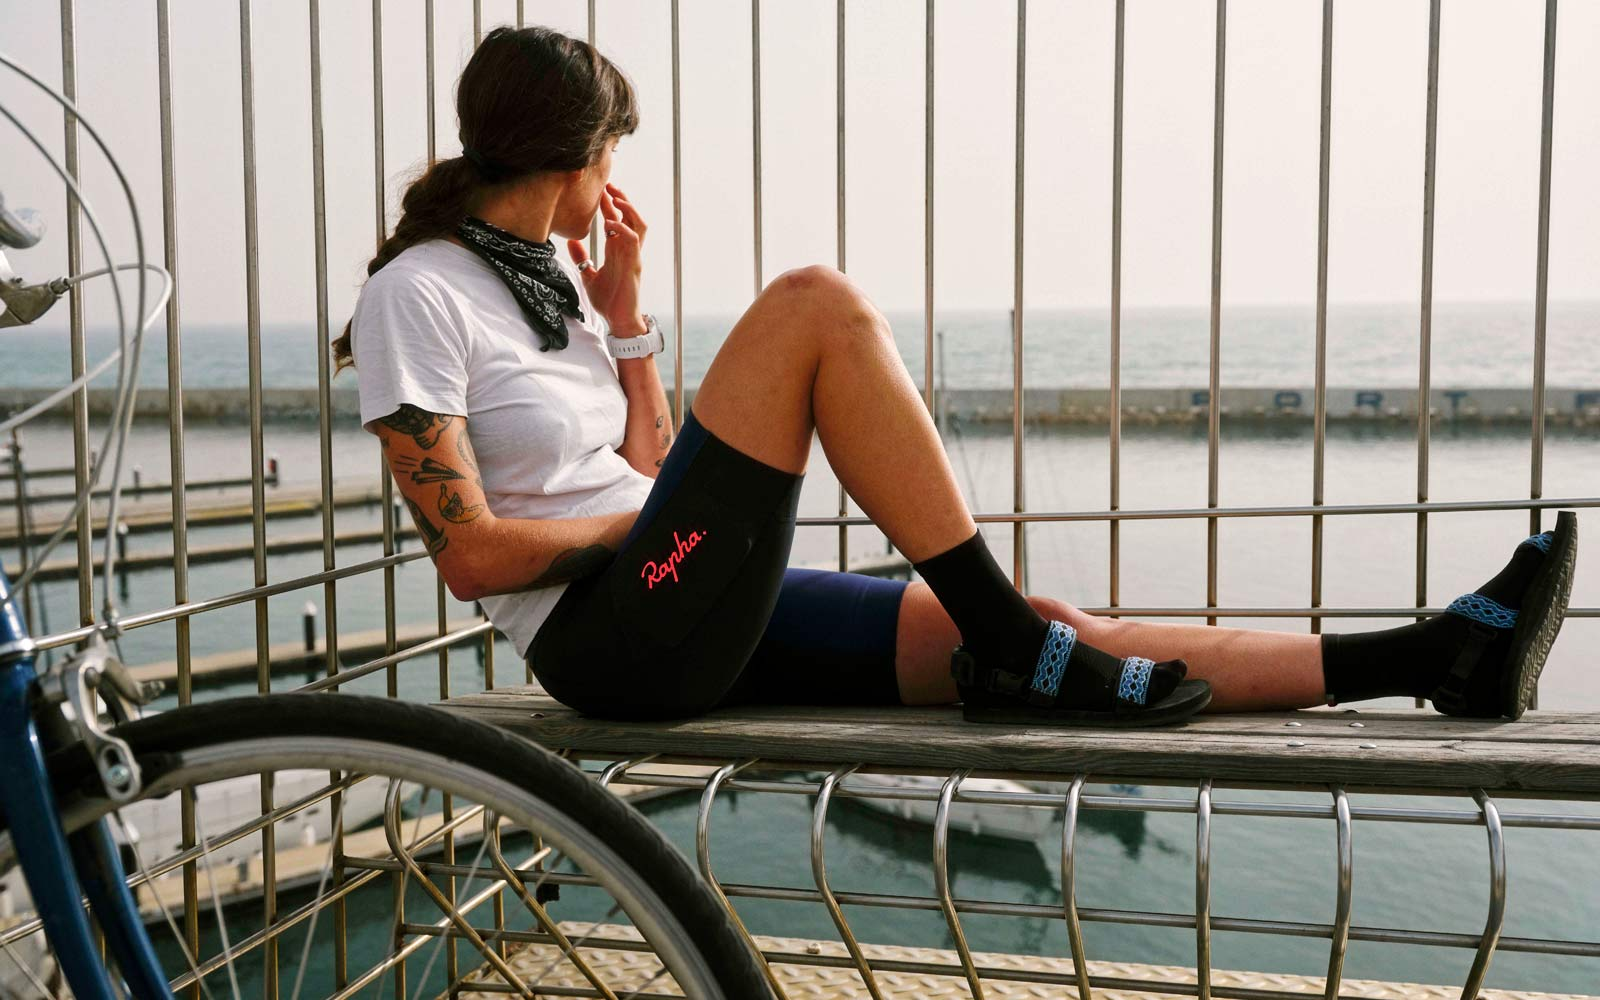 Rapha Women's All Day Leggings and Shorts,BCN lounging